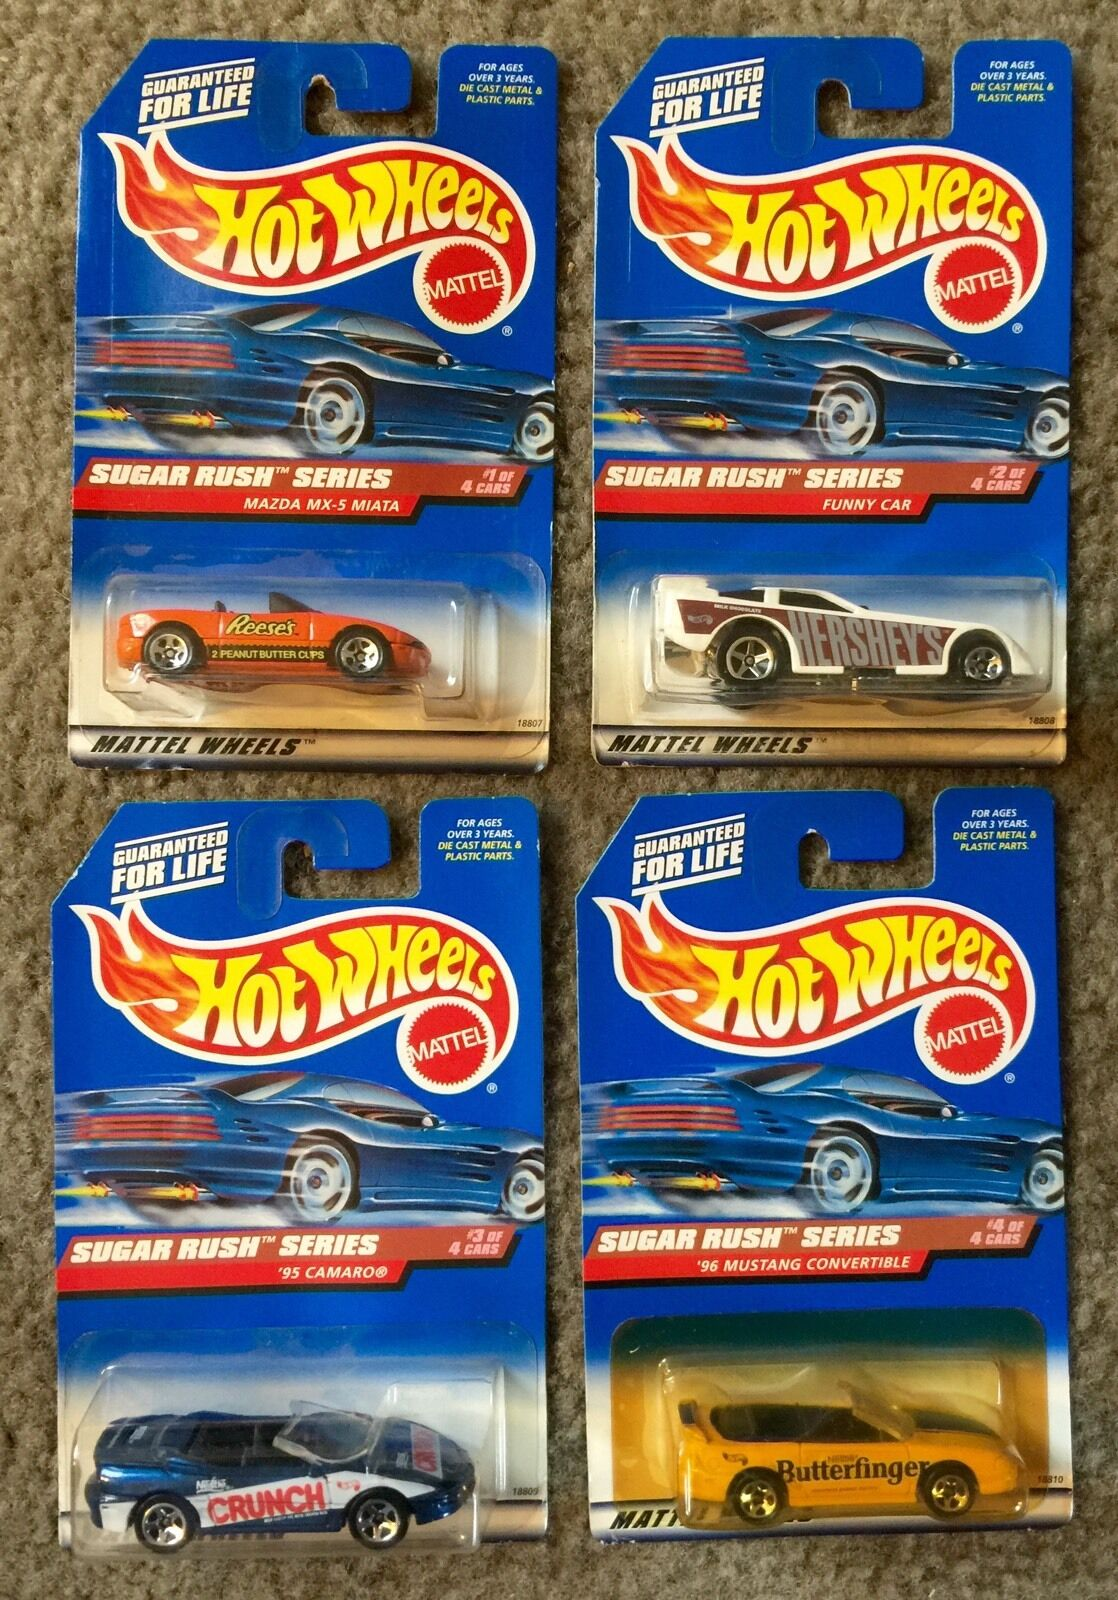 SUGAR RUSH SERIES 1997 Hot Wheels- 4 Car Set